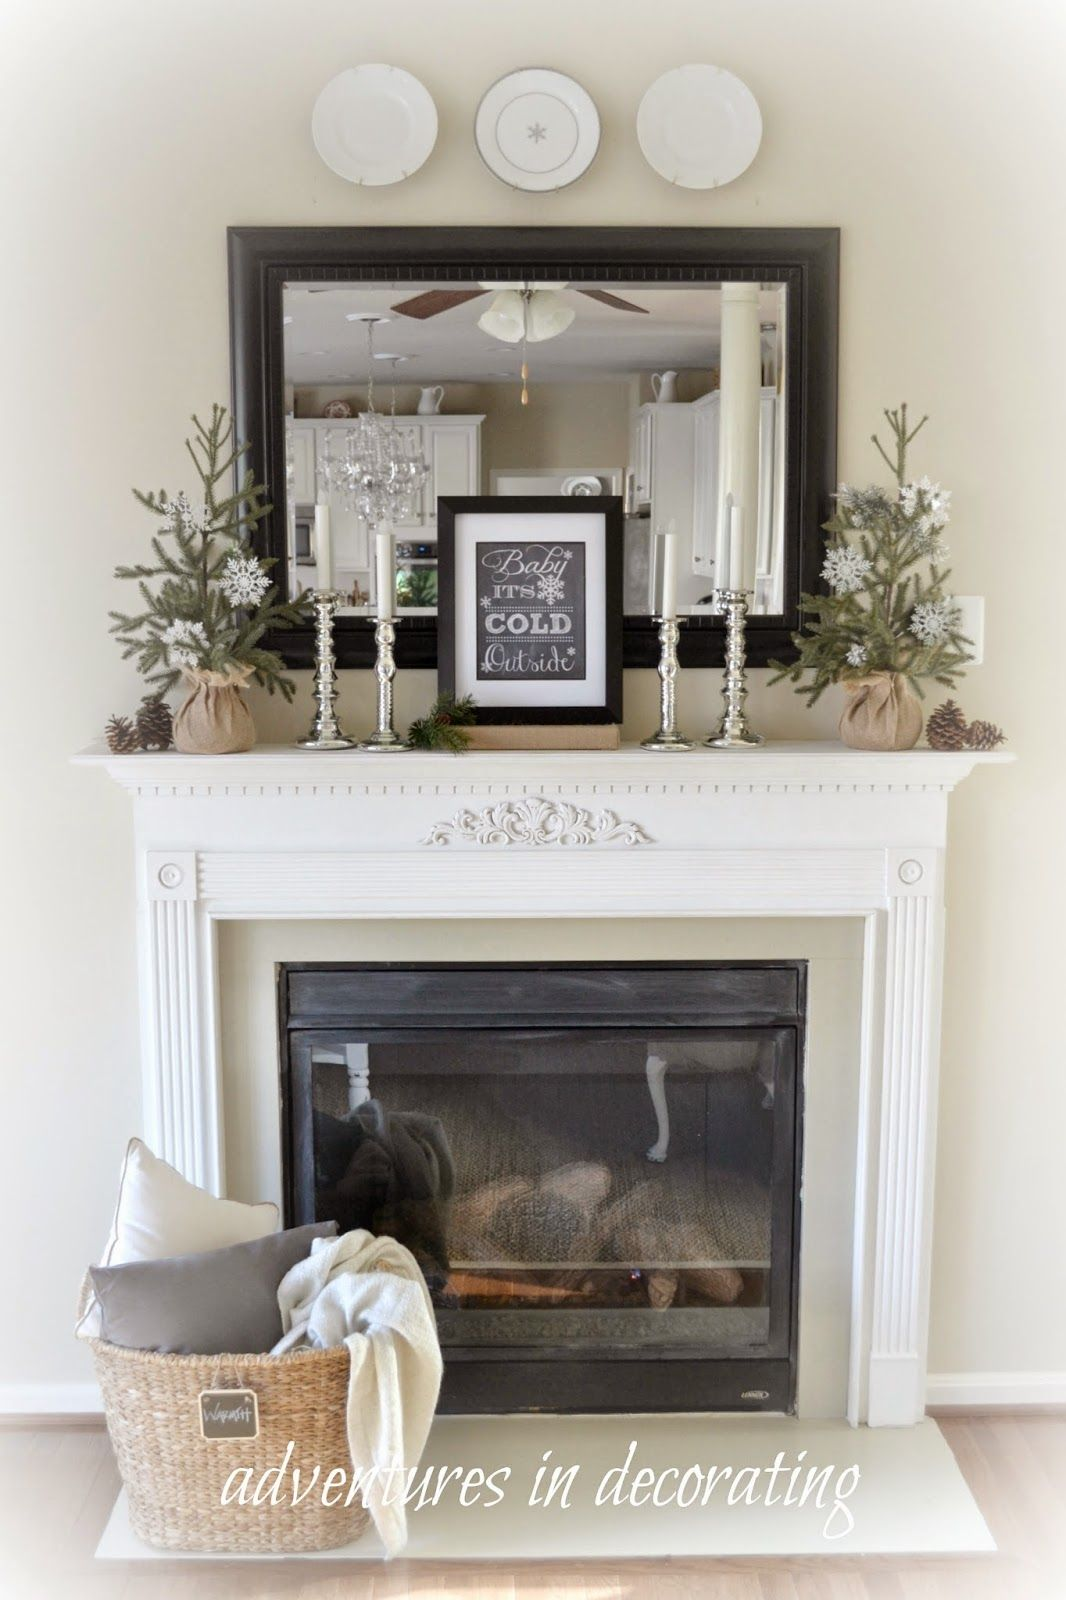 Our Winter Great Room Fireplace Mantel Decor Fireplace Mantle